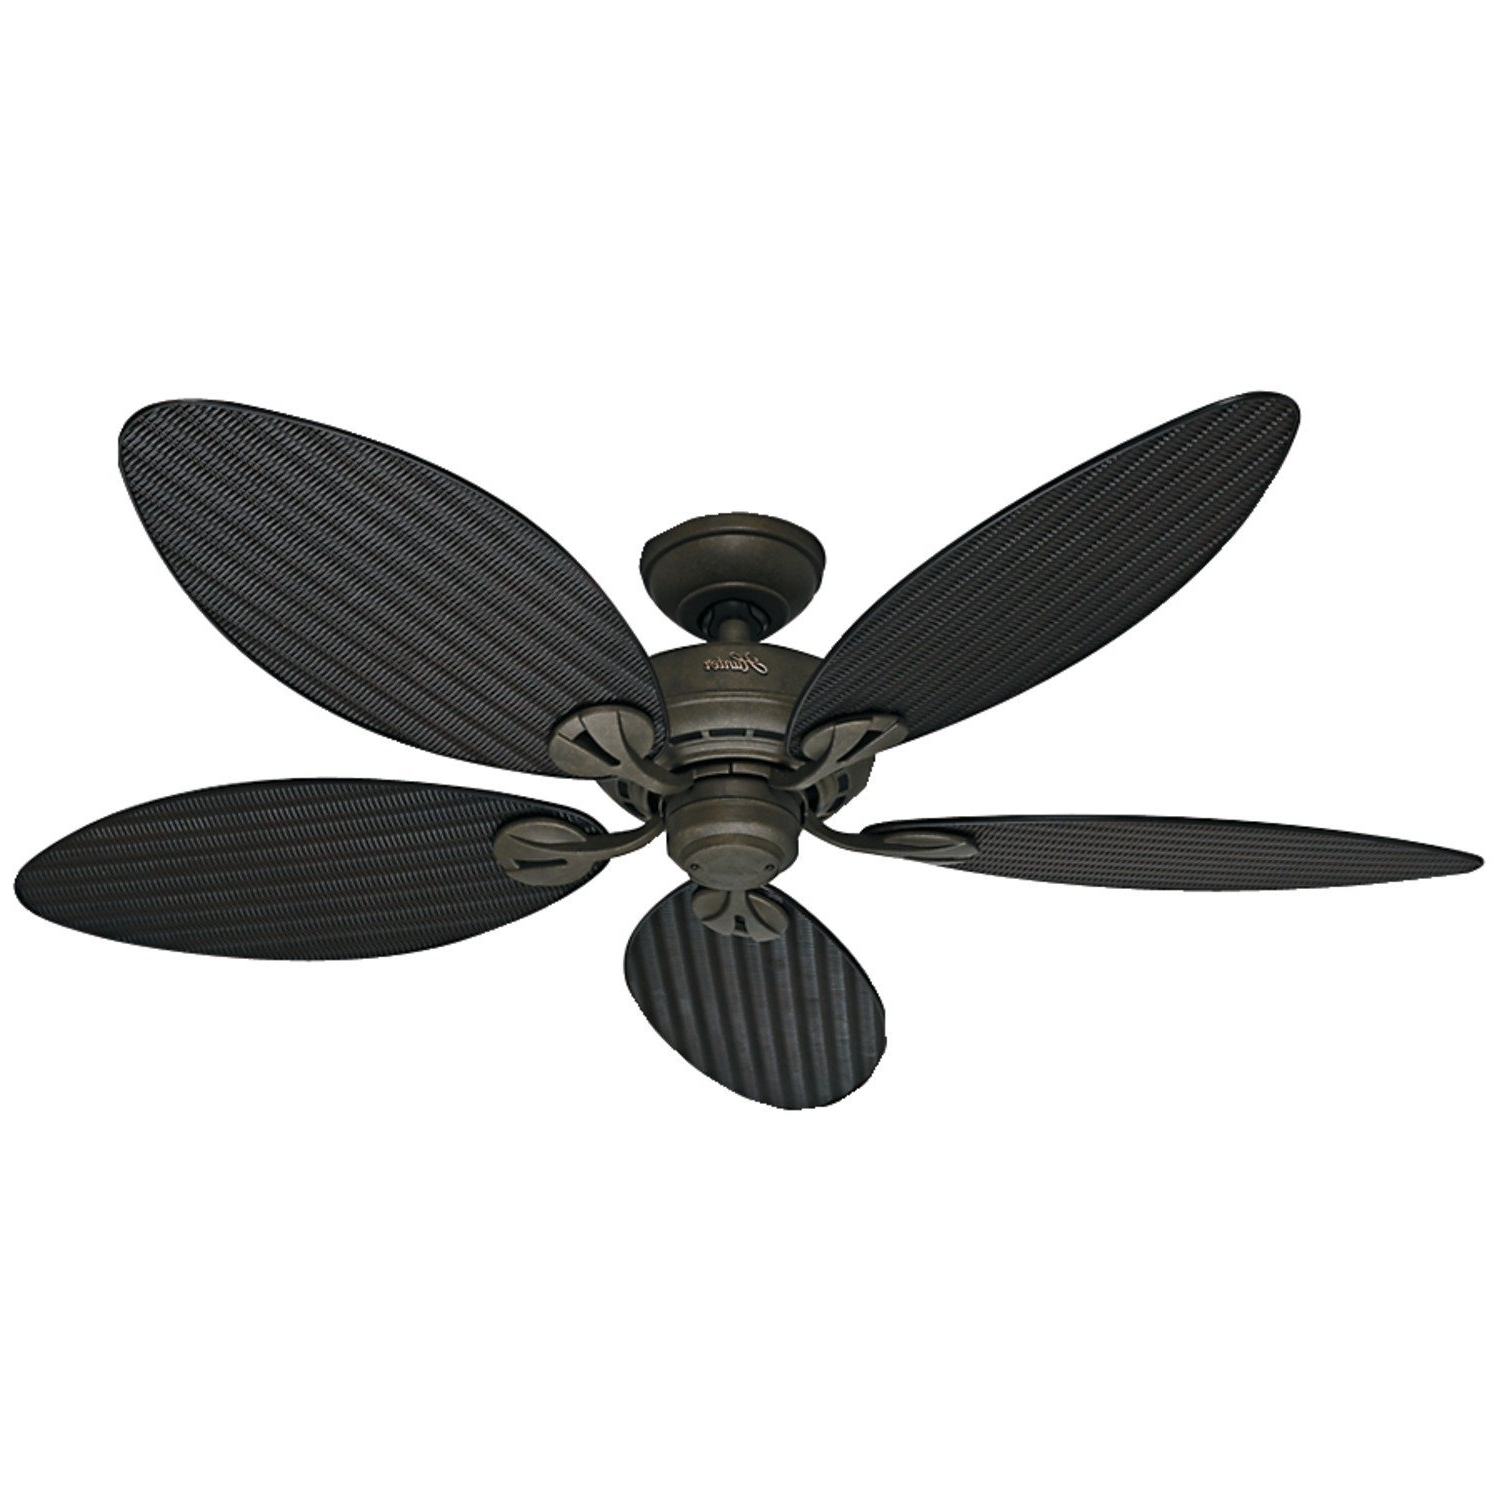 2018 Ceiling: Marvellous Ceiling Fans With Leaf Shaped Blades Wicker With Outdoor Ceiling Fans With Palm Blades (Gallery 15 of 20)